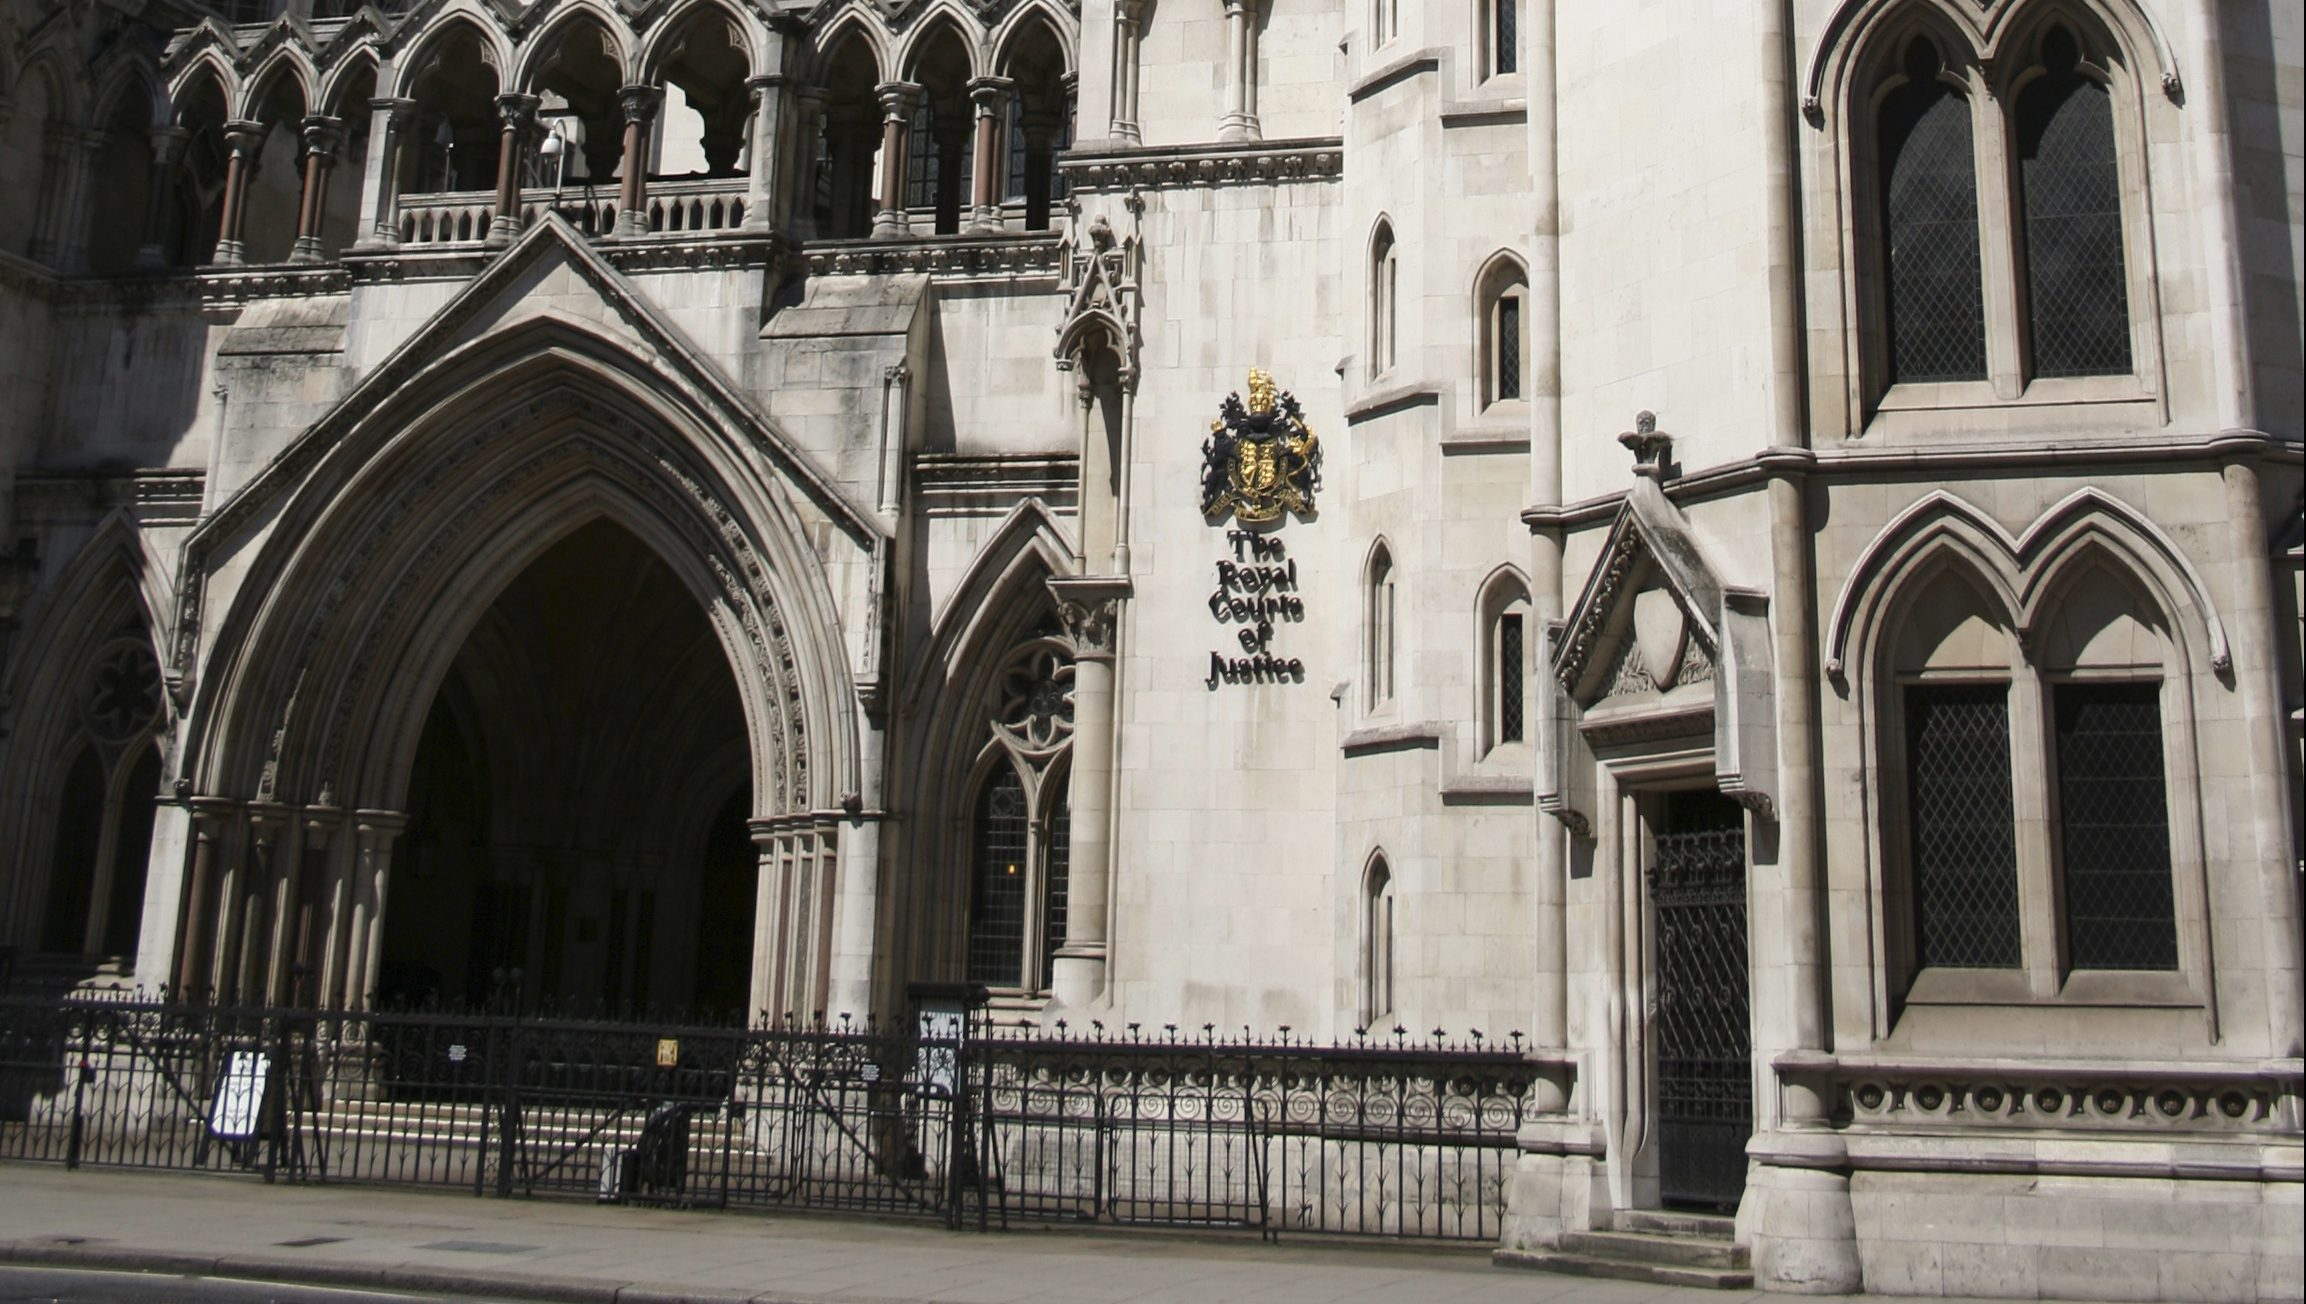 Royal courts of Justice, Strand, London